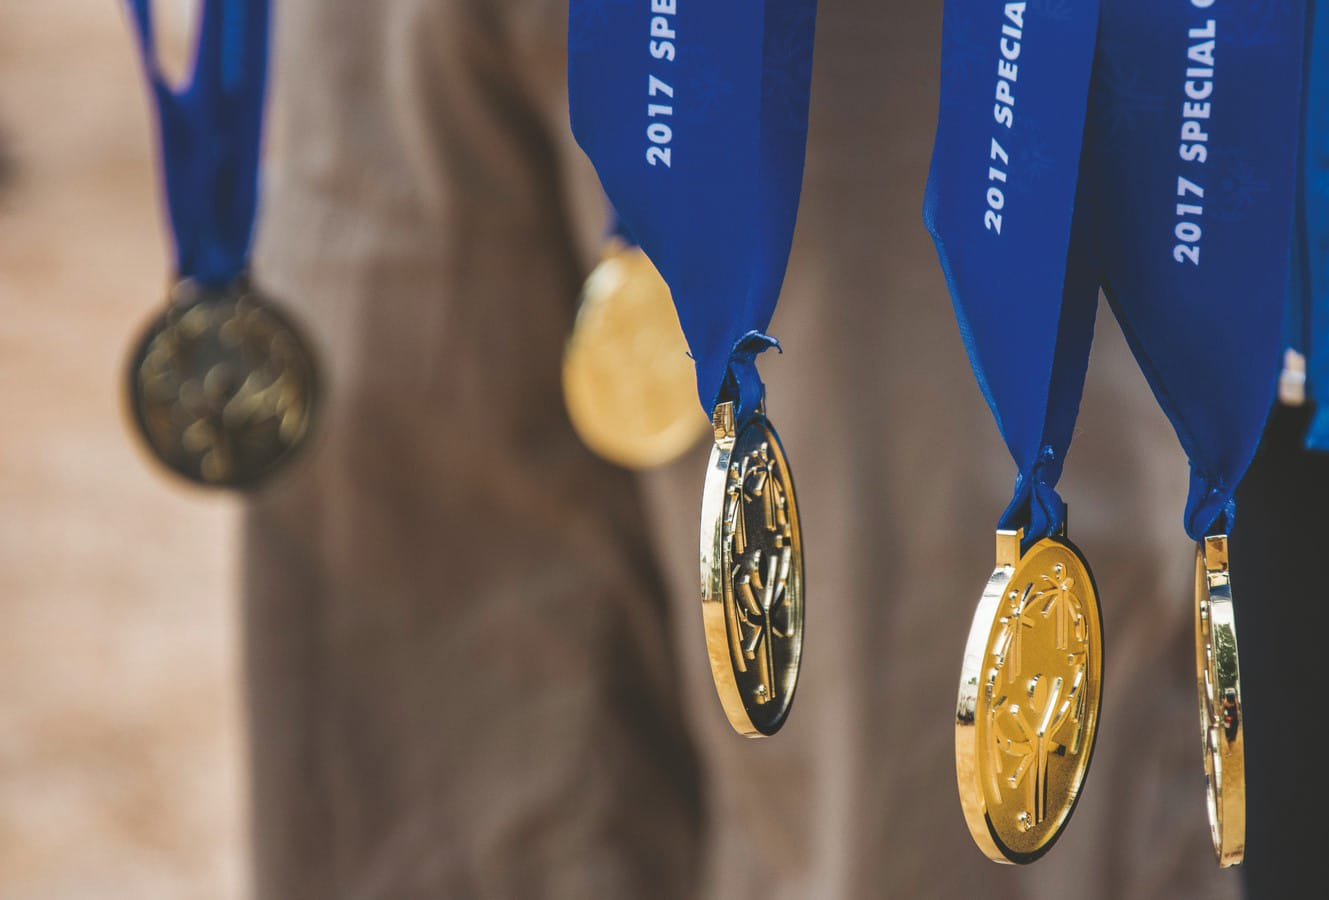 5 hanging gold medals with blue neck ribbons